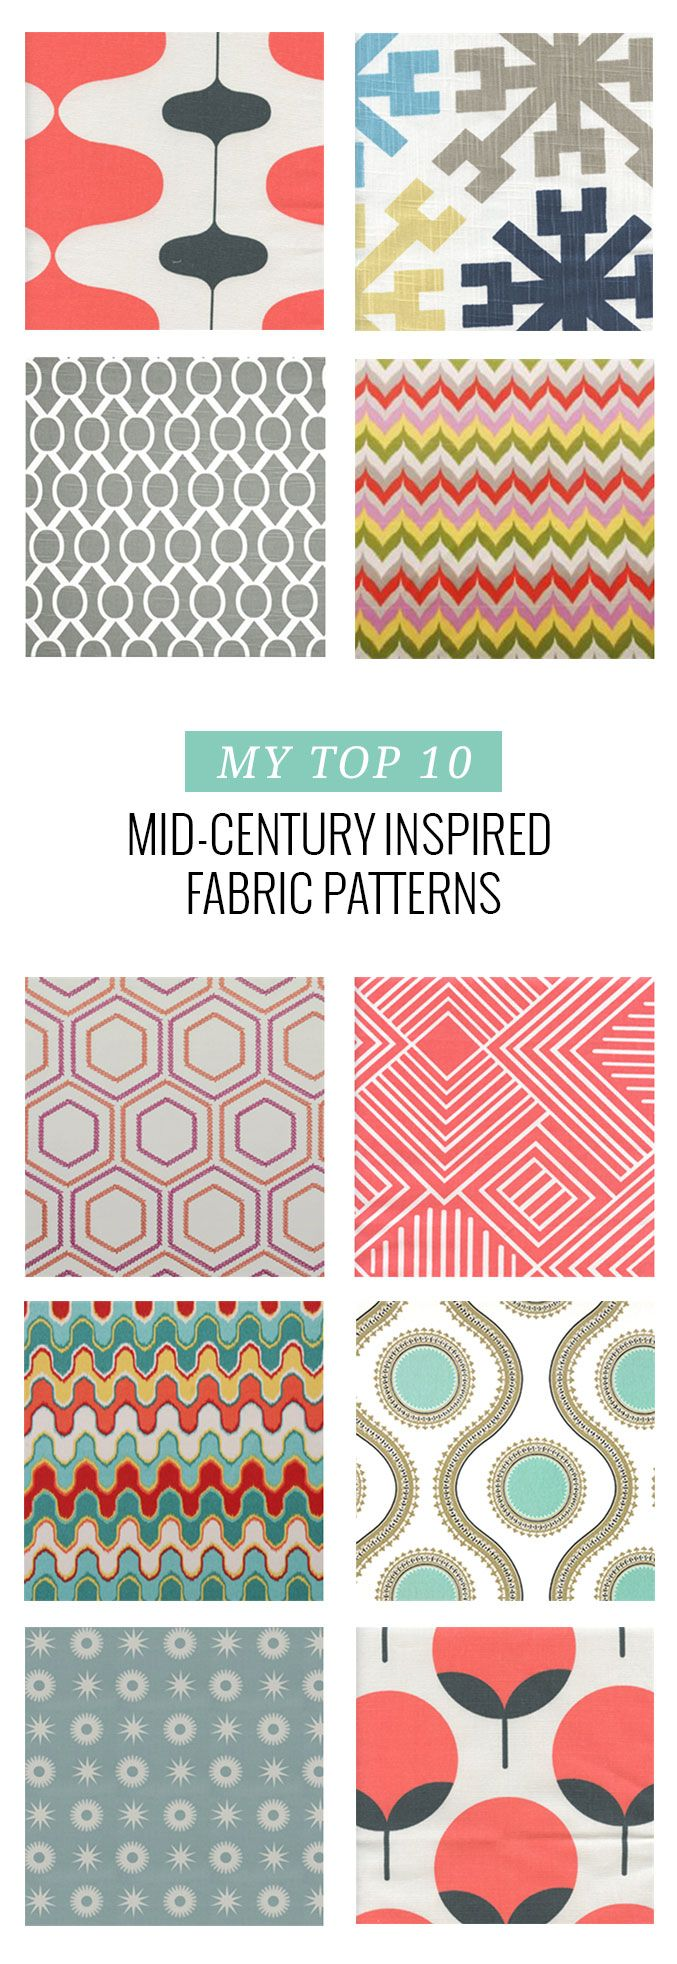 10 Mid-Century Inspired Fabric Patterns | dreamgreendiy.com + @buyfabrics